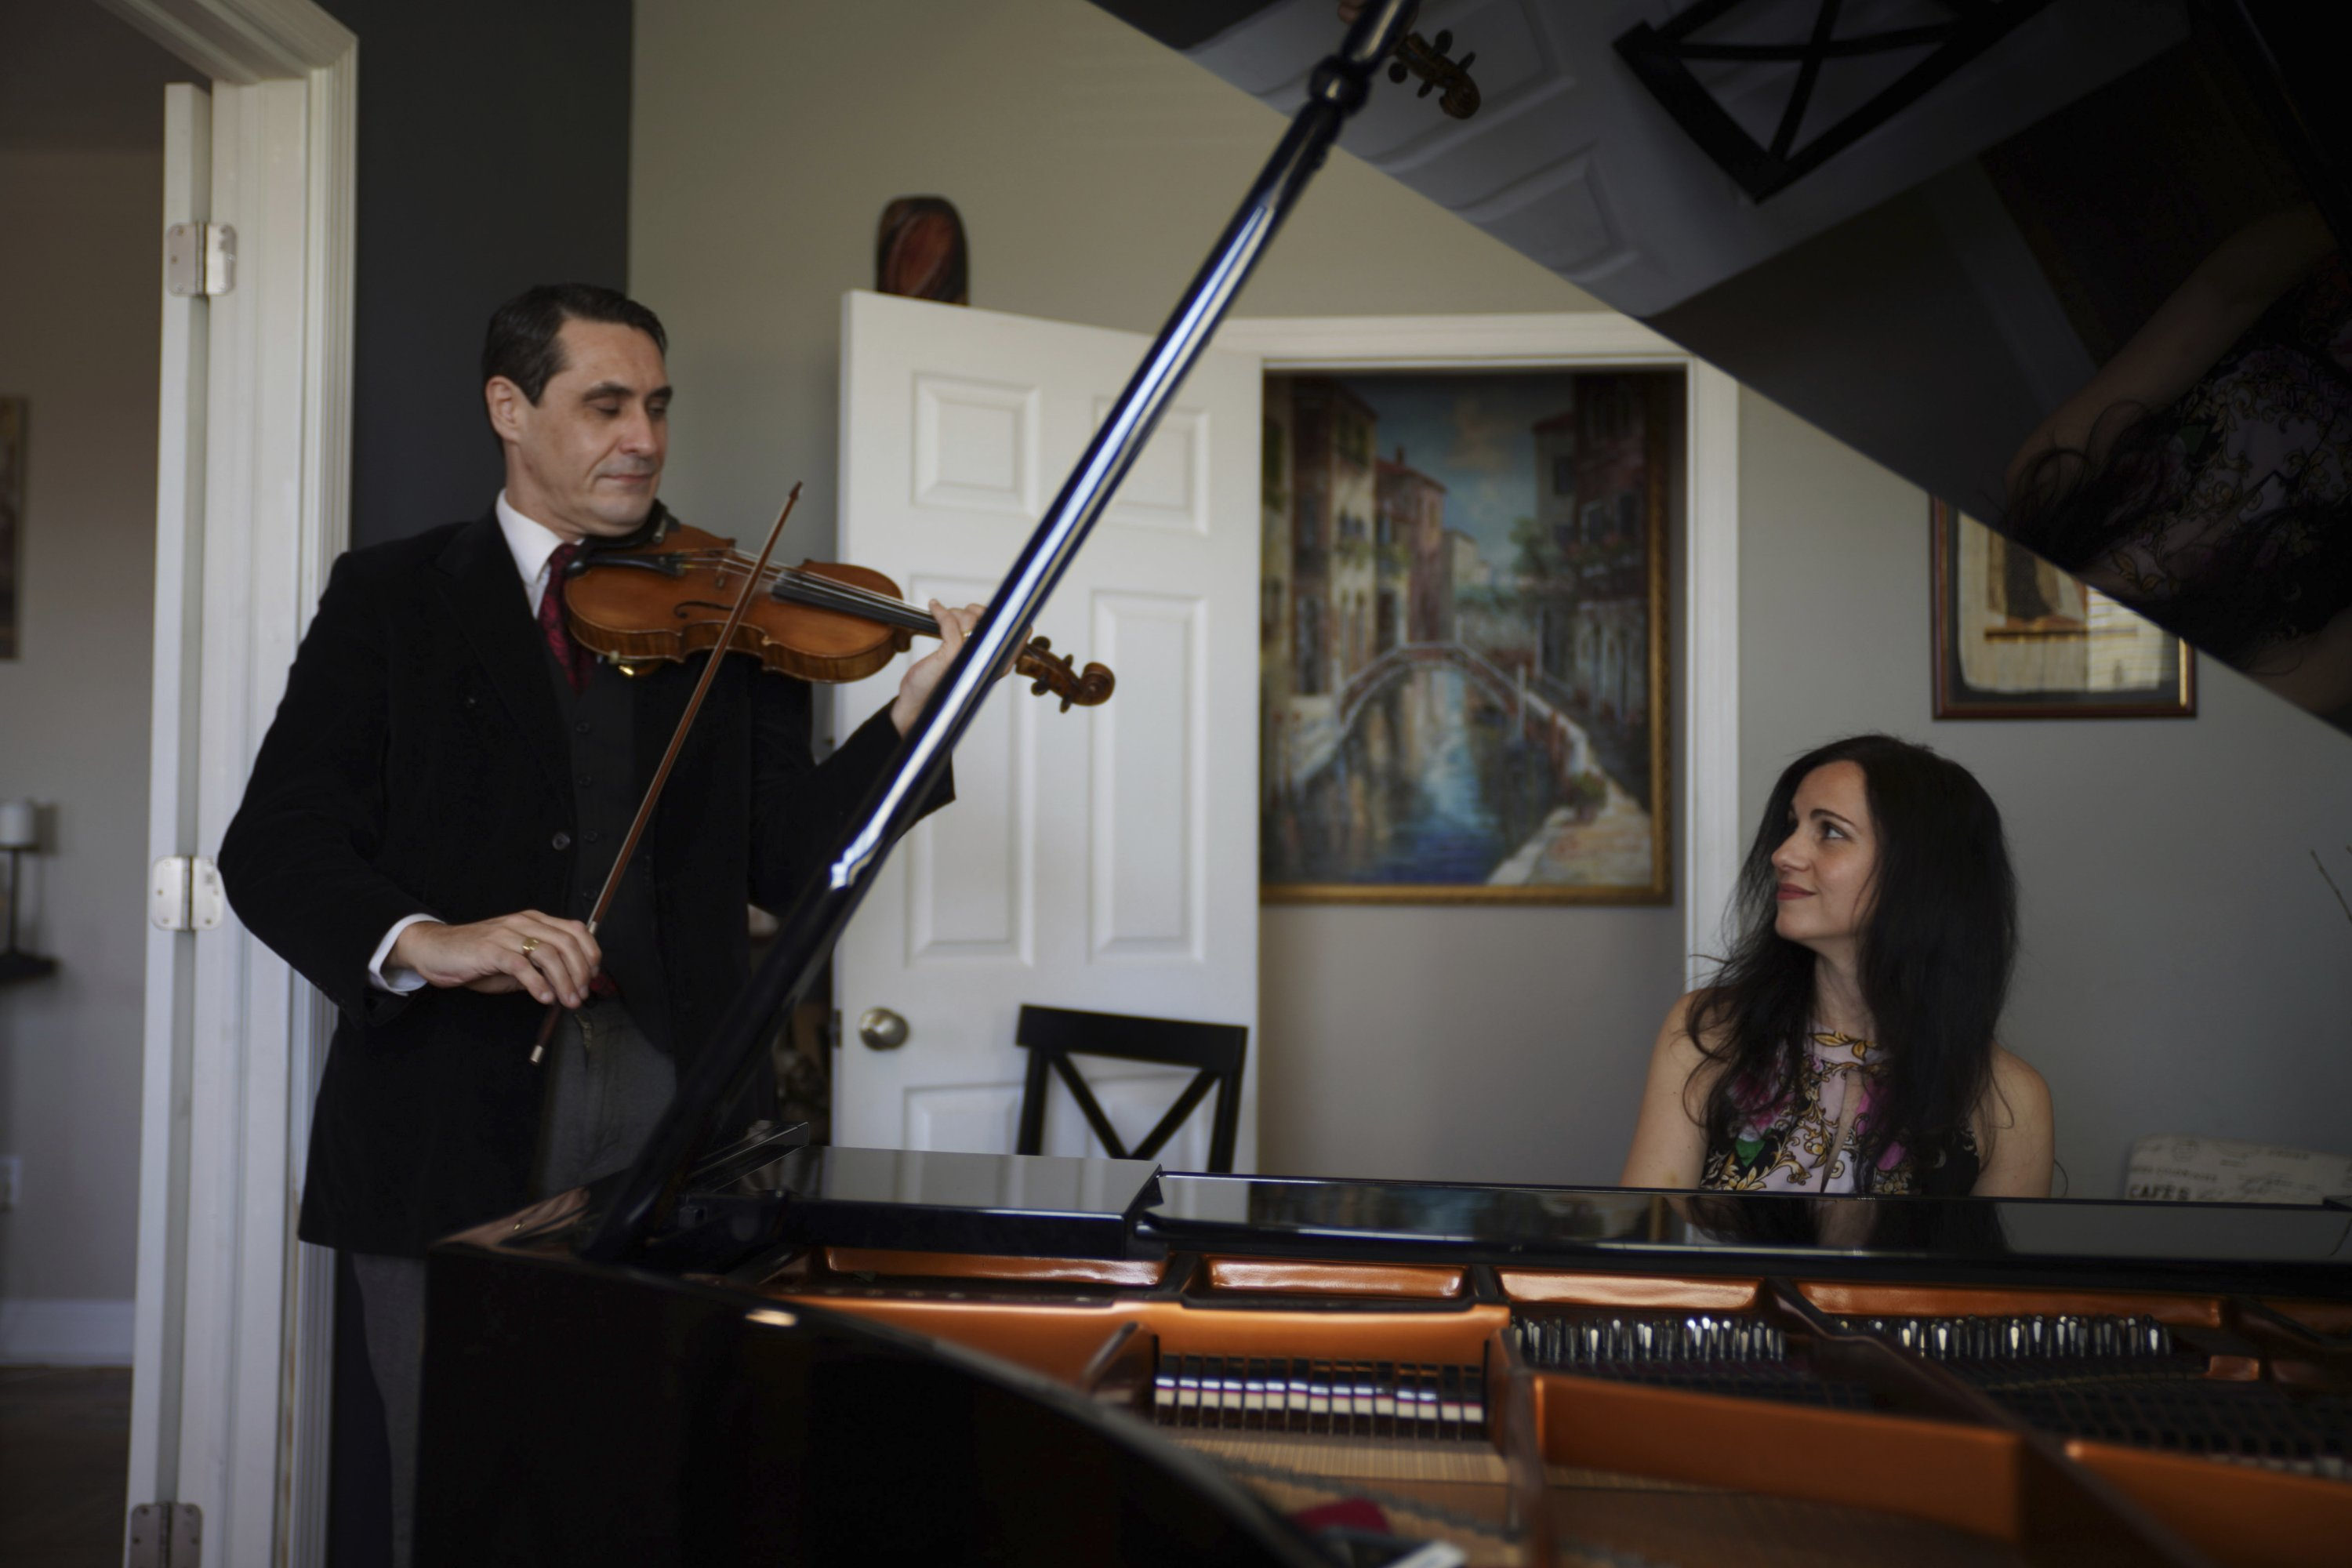 Musicians David Shenton and Erin Shields perform inside their home in the Queens borough of New York City, New York, the U.S., March 30, 2021. (AP Photo/Emily Leshner)